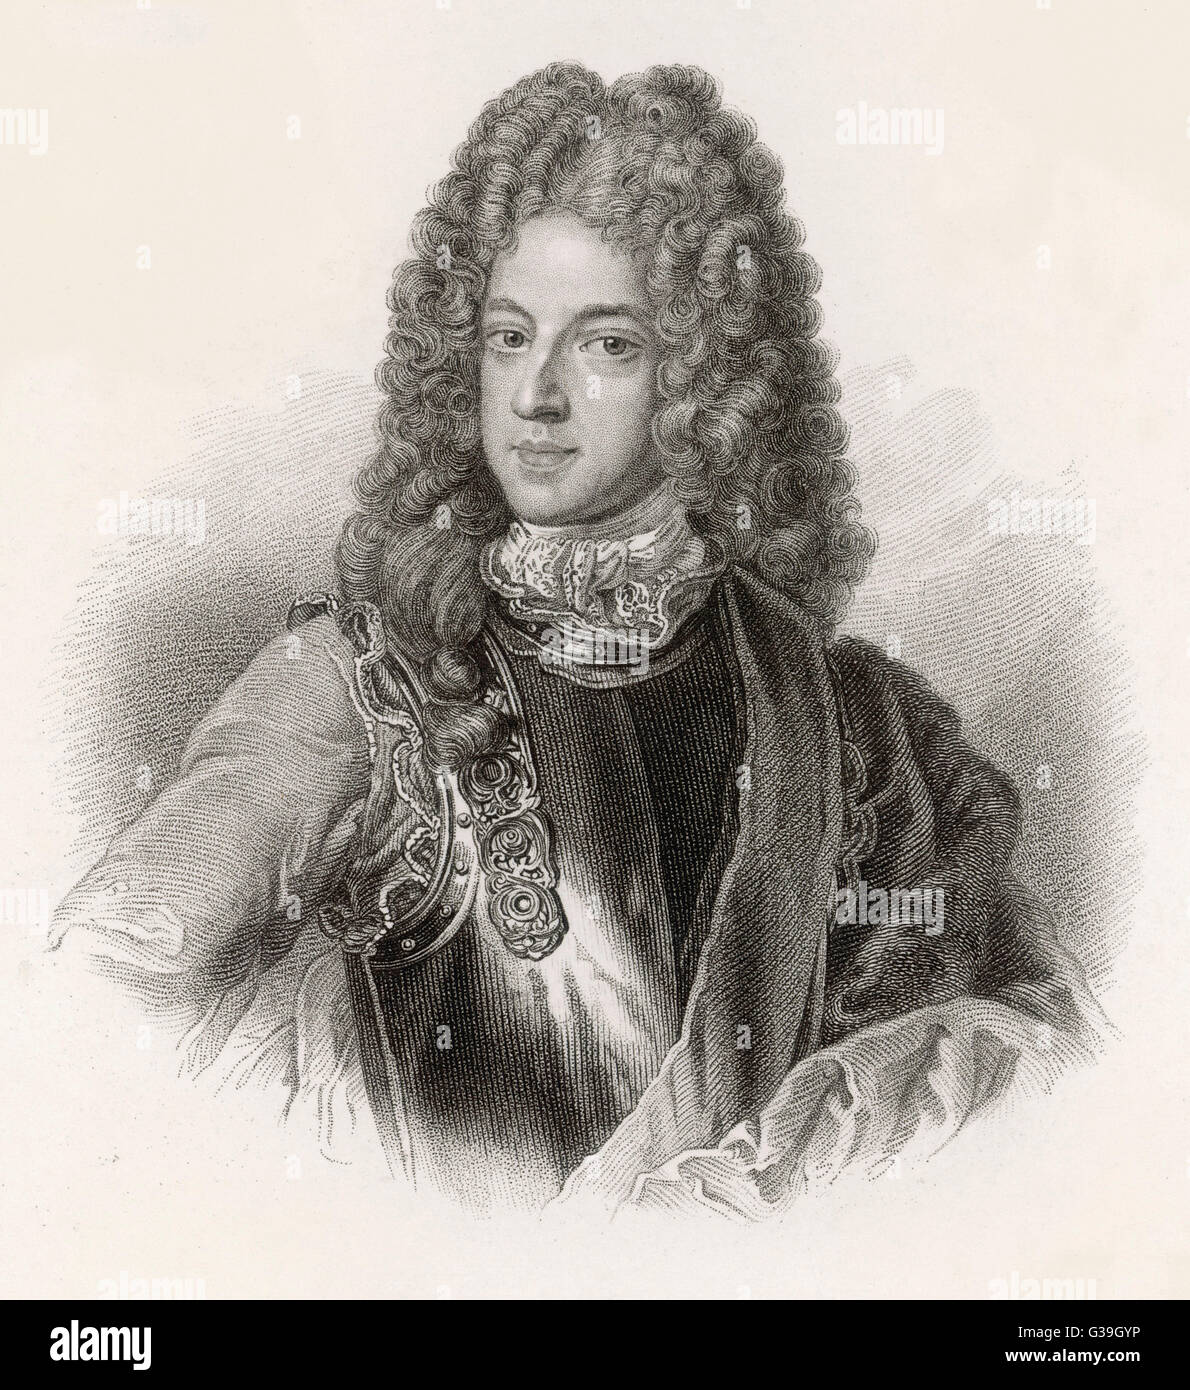 THE OLD PRETENDER James Francis Edward Stuart,  father of Charles Edward Stuart  (The Young Pretender); The Knight - Stock Image